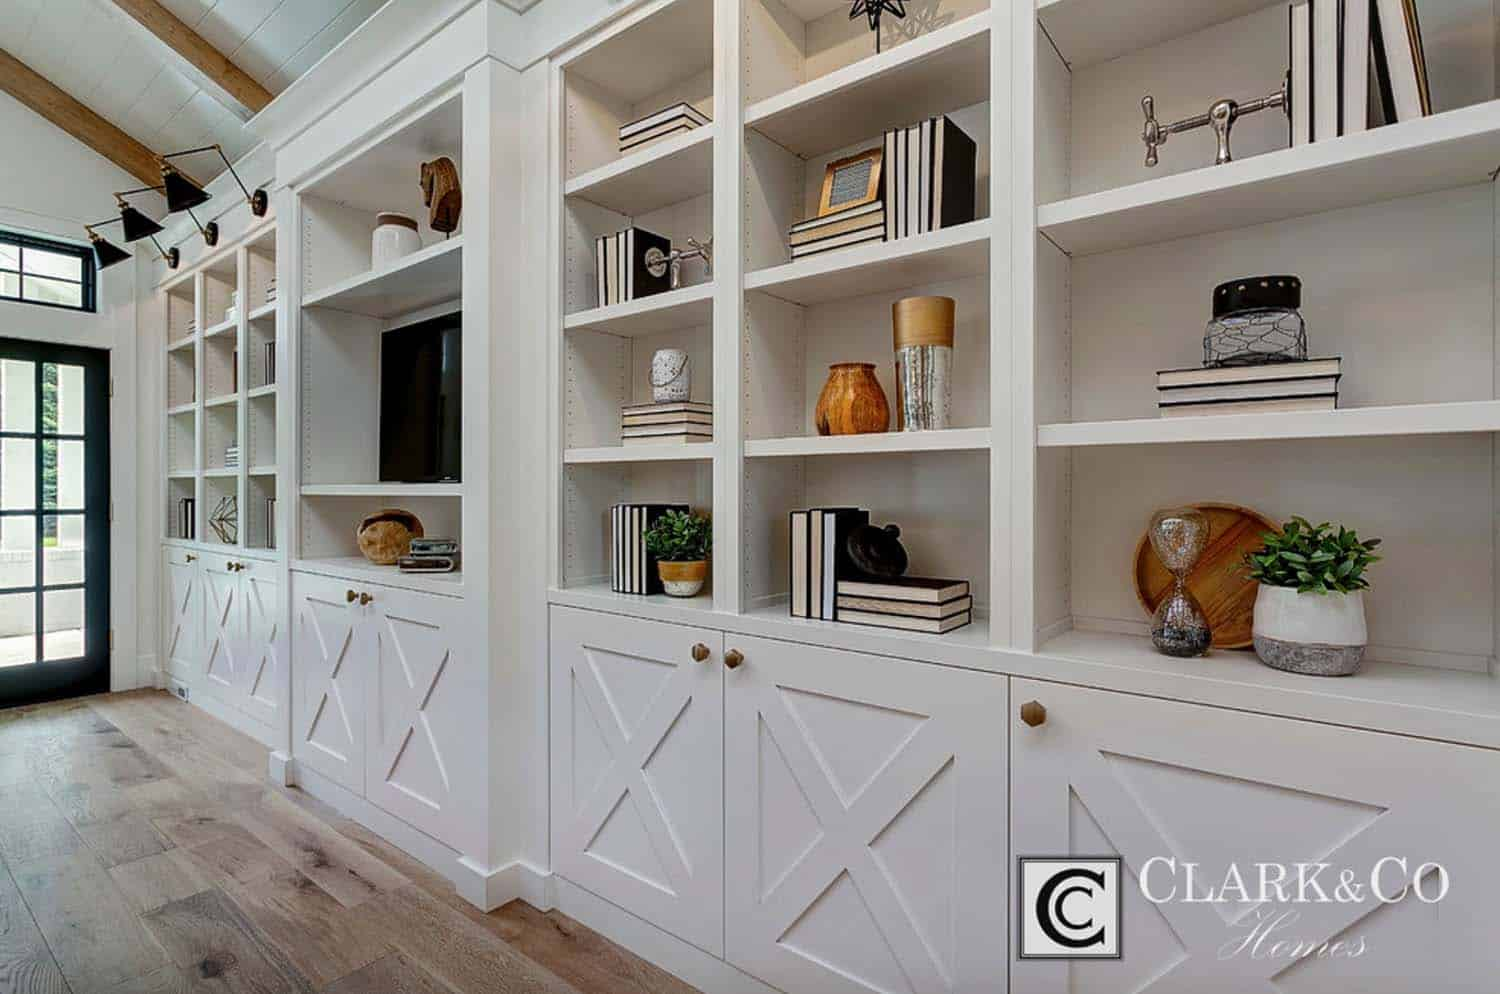 Modern Farmhouse Style-Clark and Co Homes-32-1 Kindesign